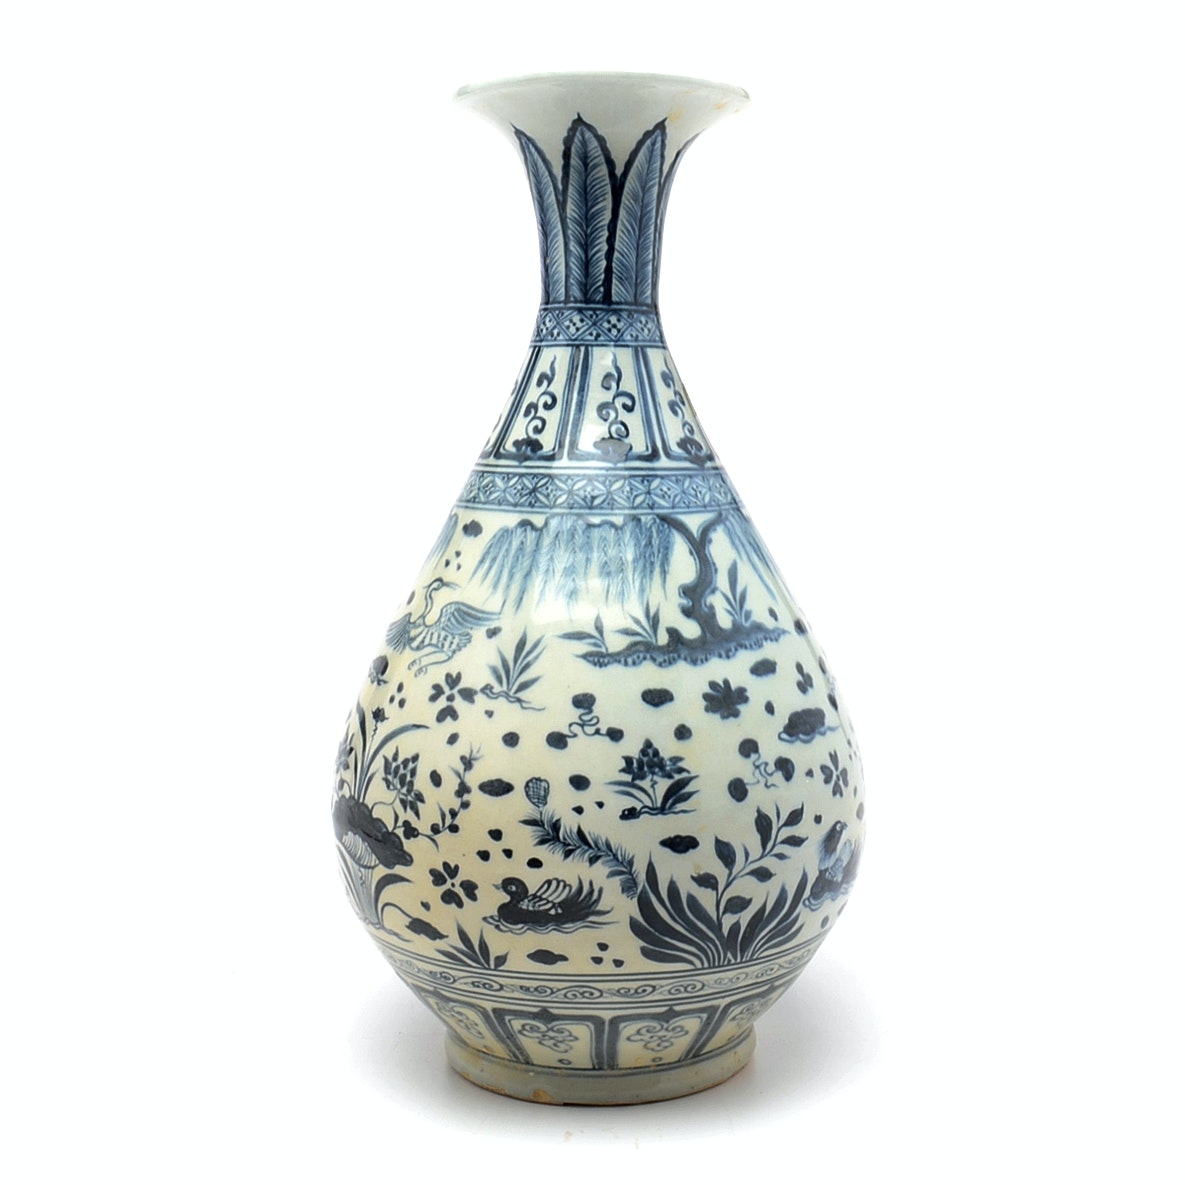 East Asian Style Large Vase